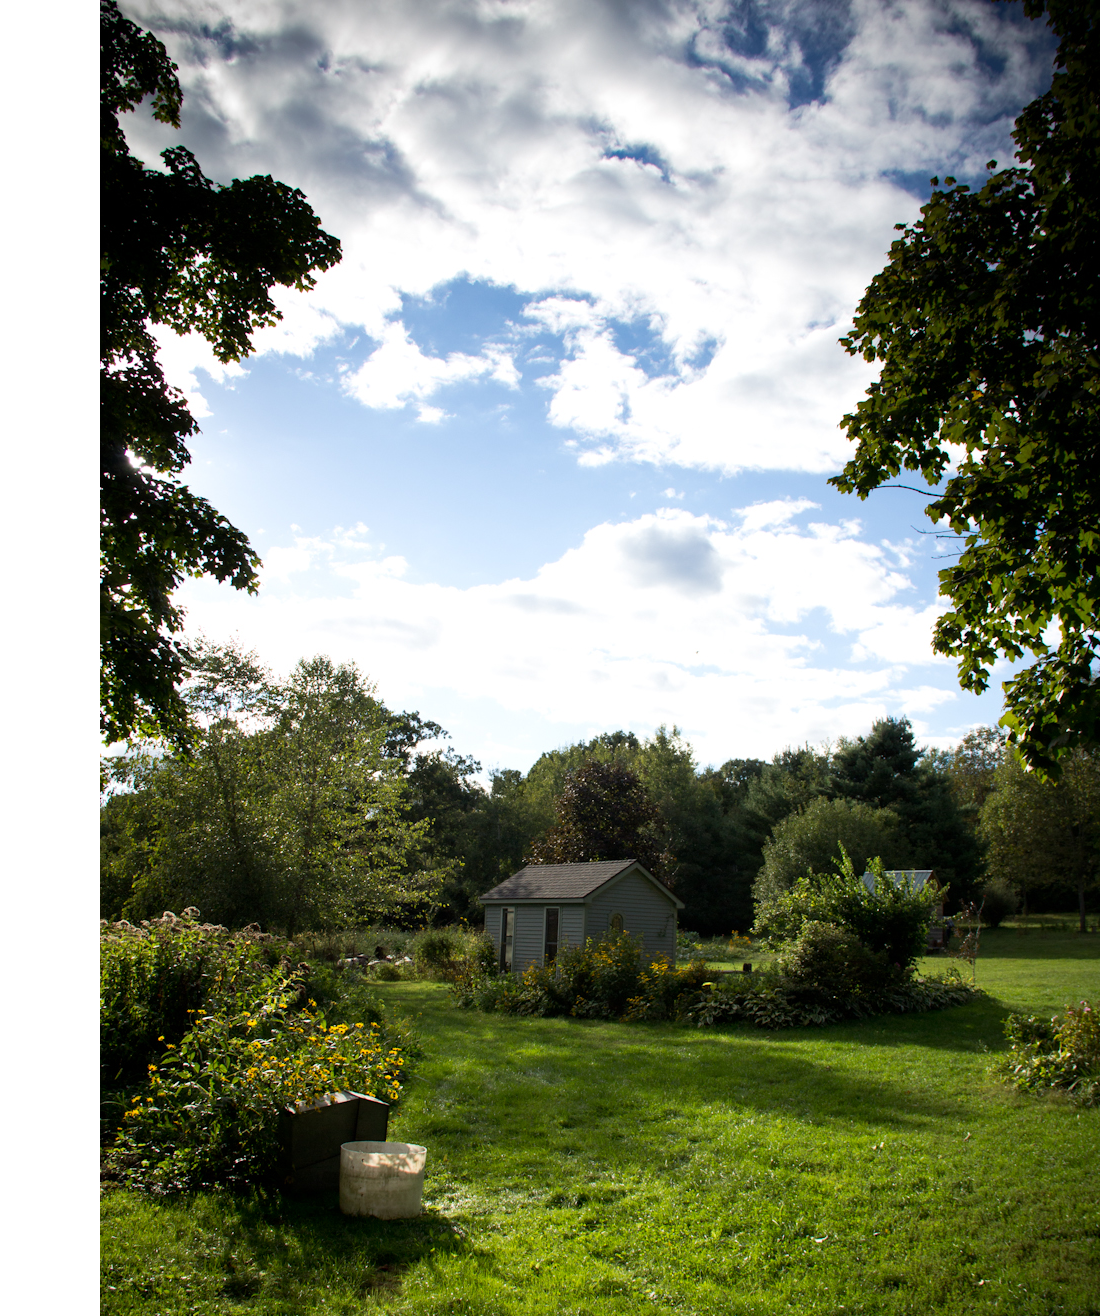 ASGT_FL_HighRes_North-Plain-Farm-Great-Barrington_Credit-Alexander-Boll_1.png